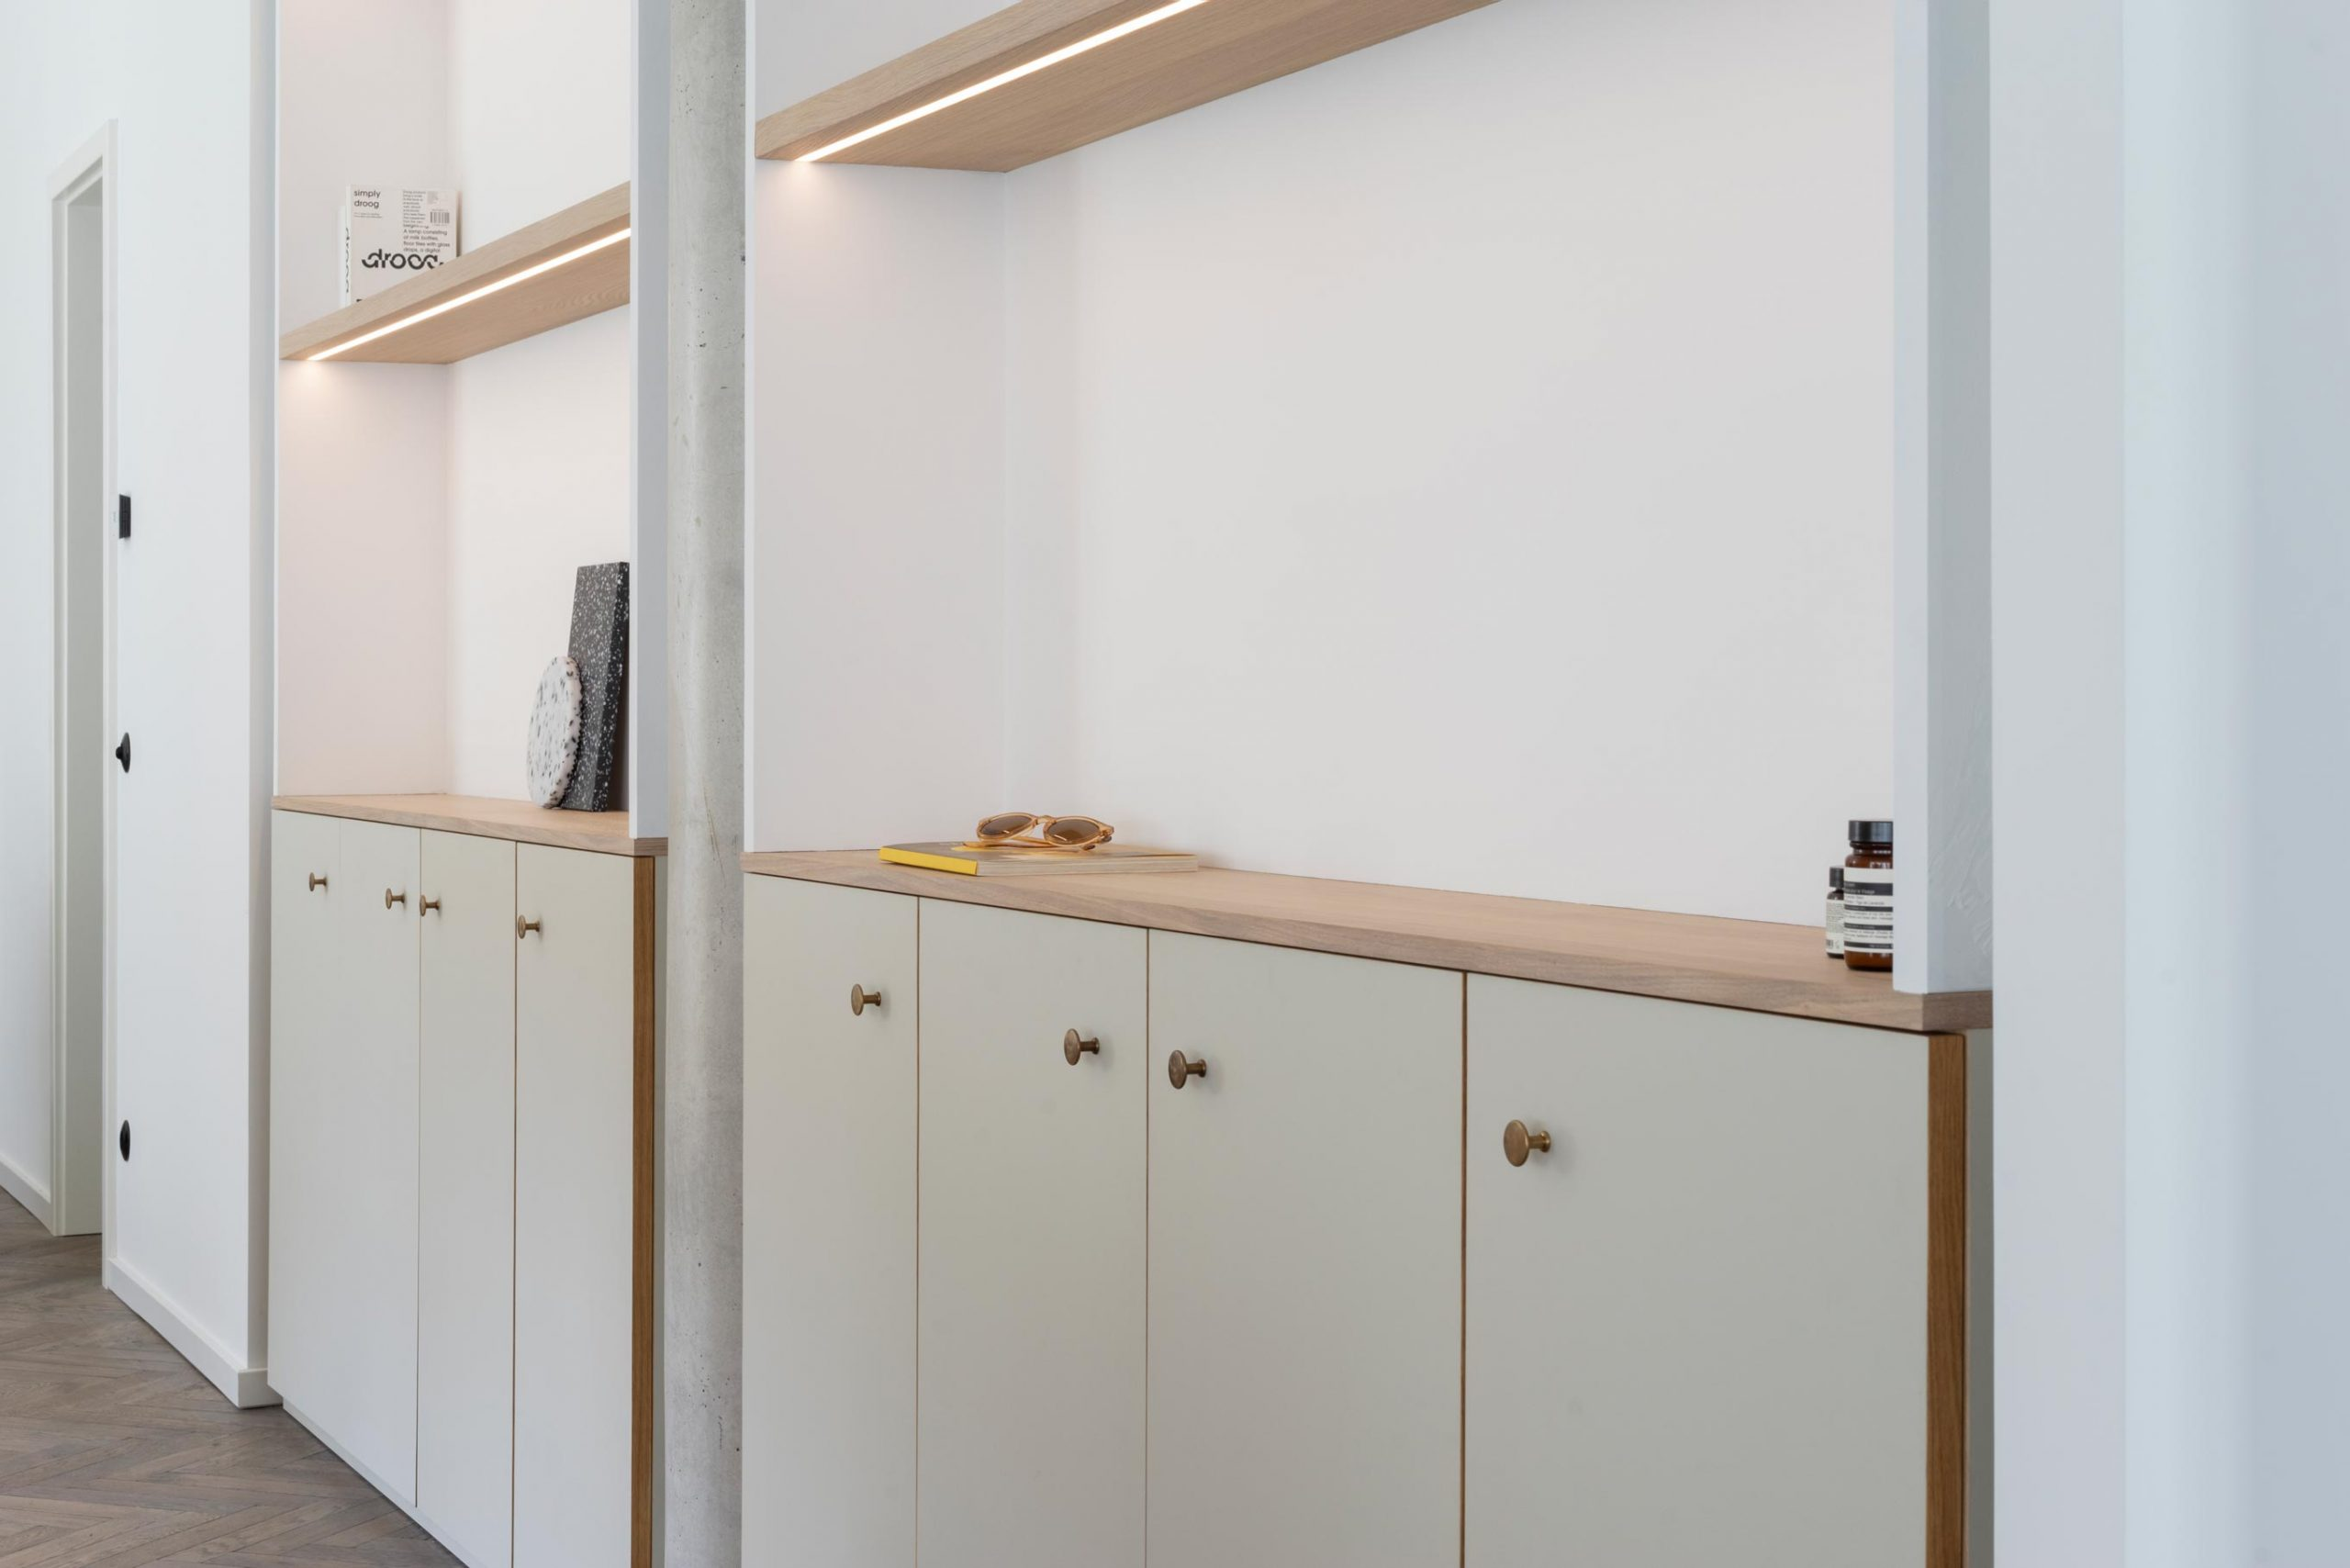 Cabinets with a smart-touch light switch